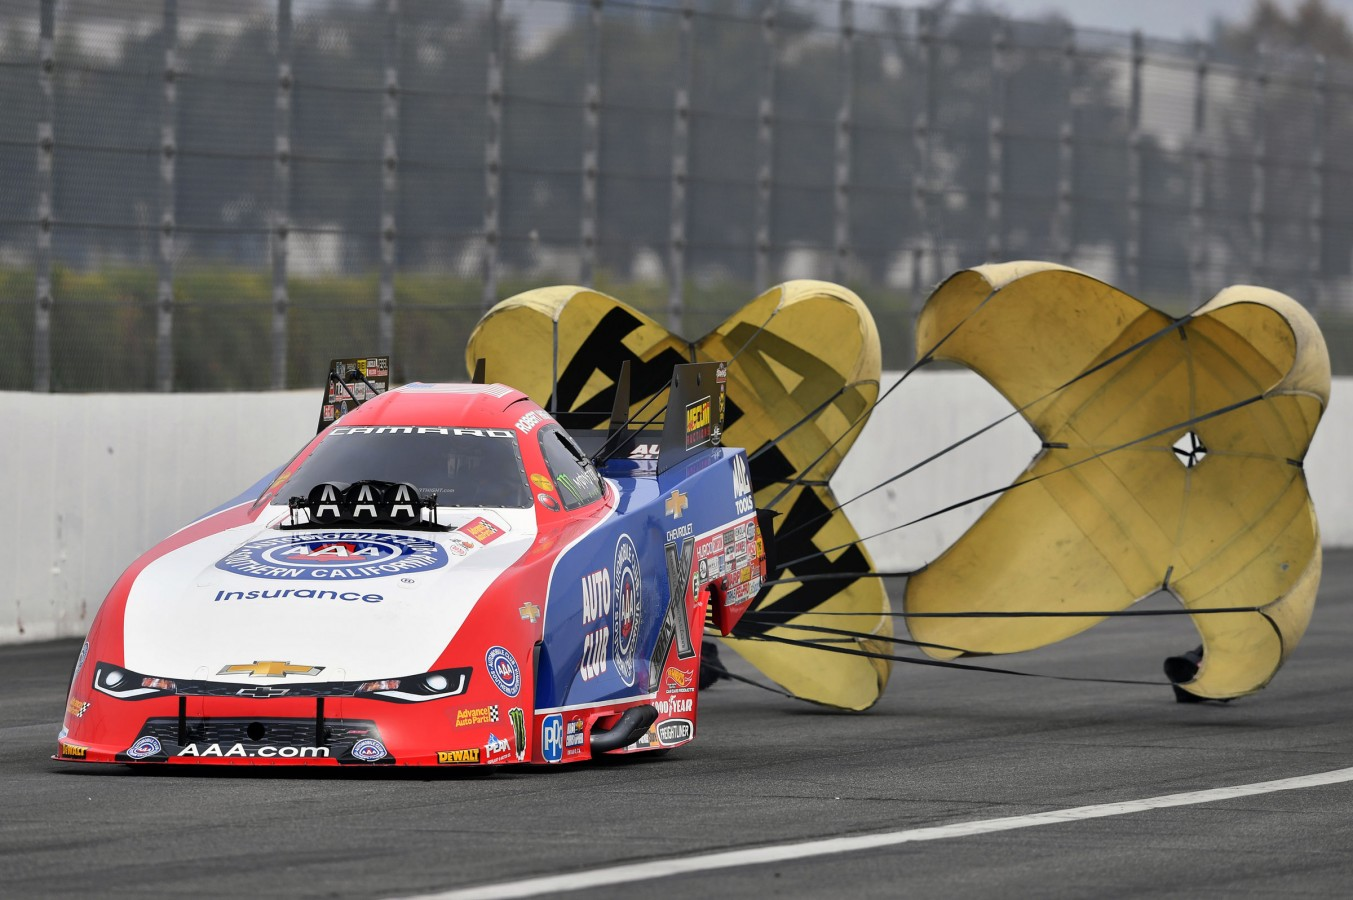 Robert Hight clinched his second NHRA Funny Car championship and first since 2009 in Sunday's first round of the series finale at Pomona, Calif